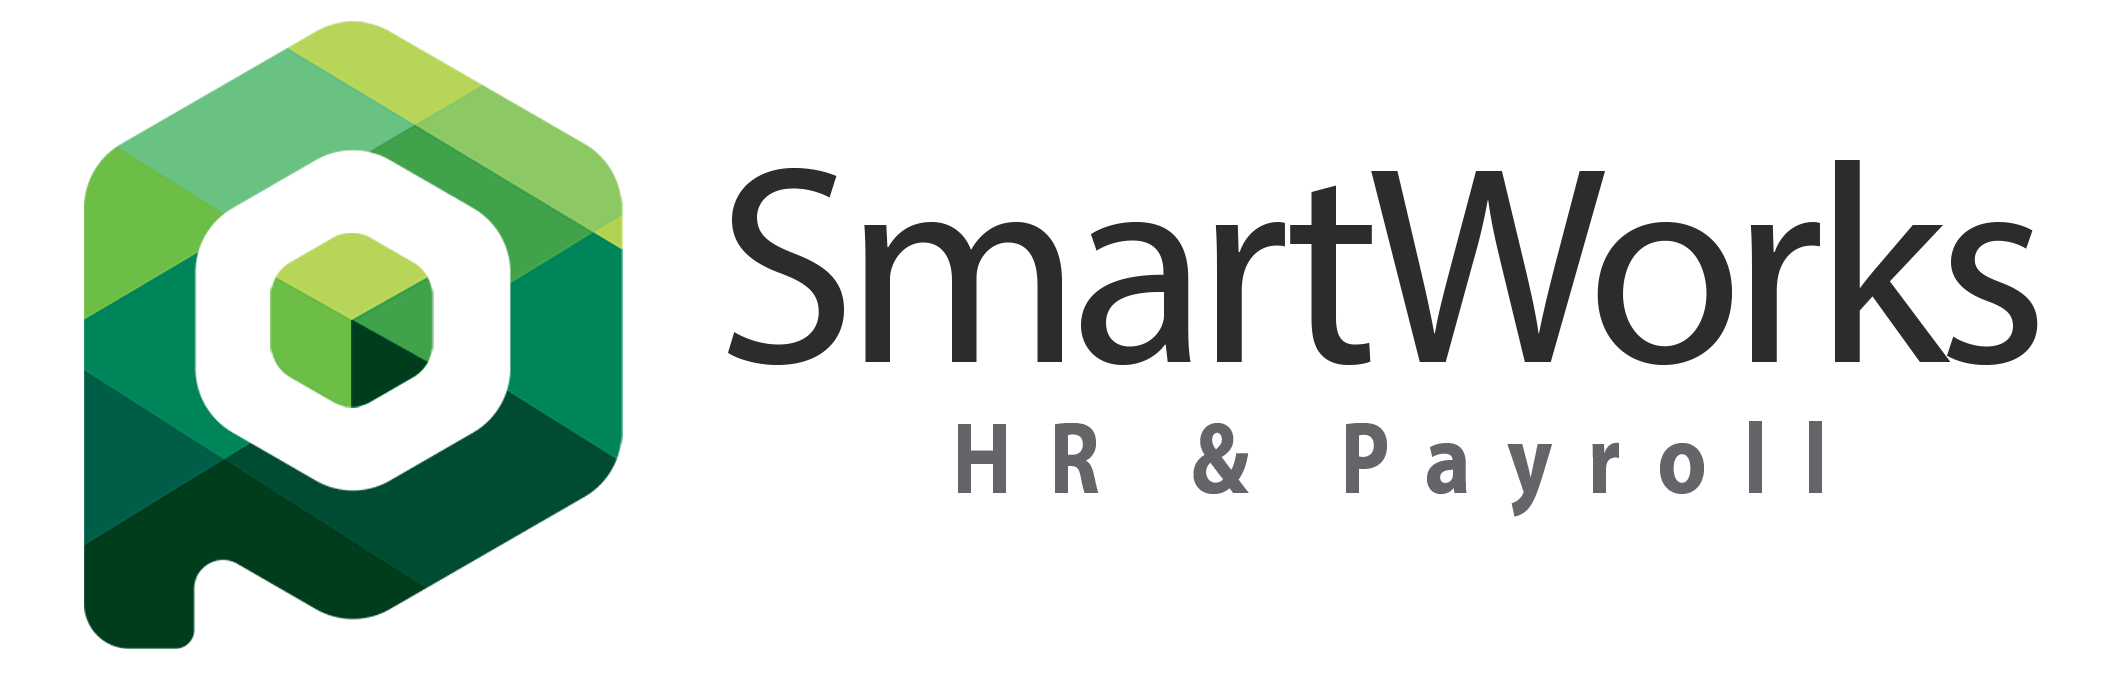 SmartWorks HR & Payroll, UK